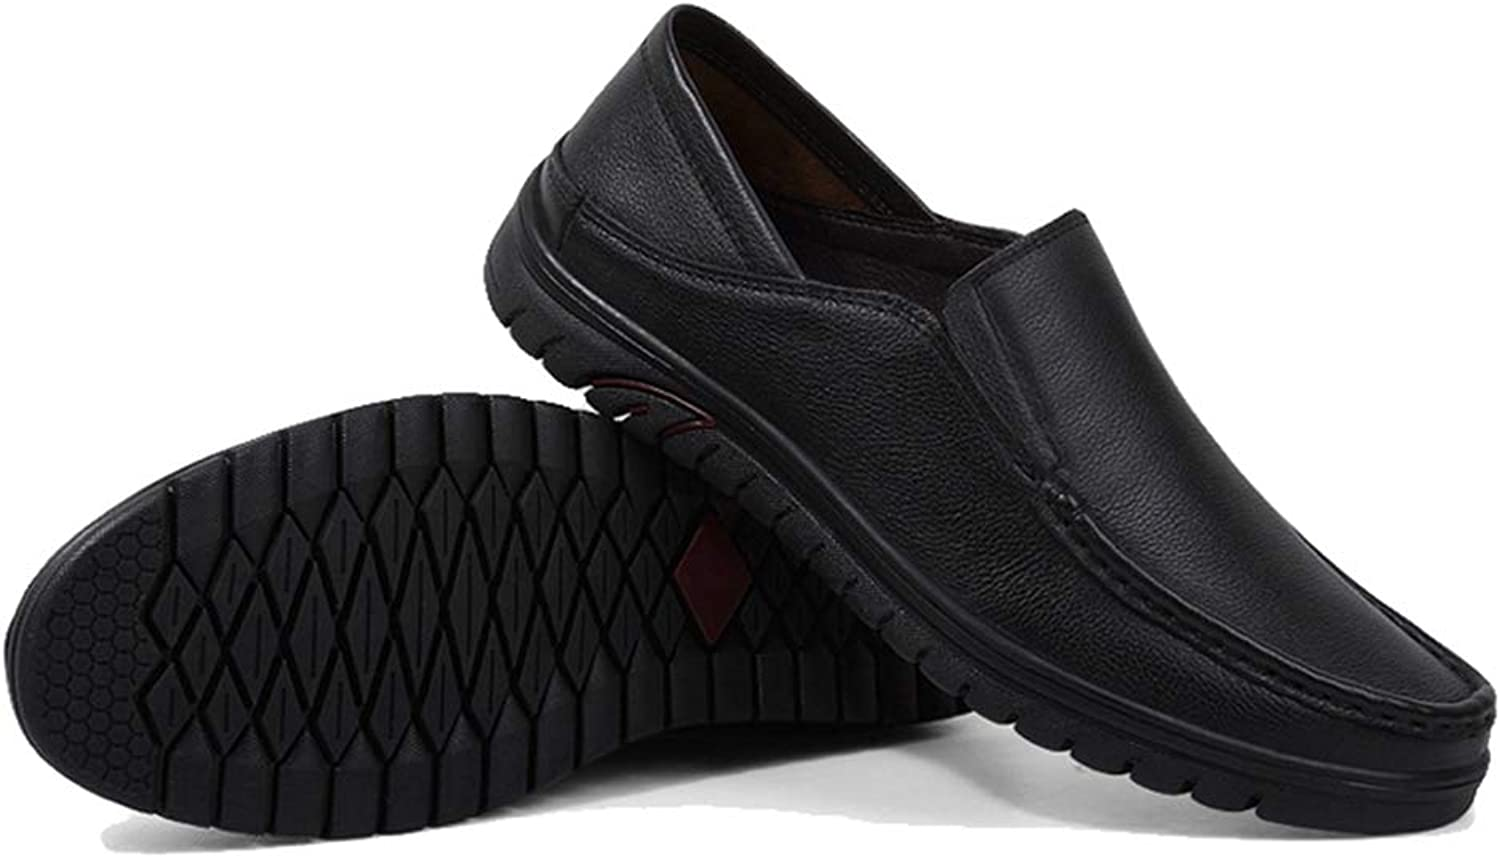 Phil Betty Mens Casual shoes Breathable Non-Slip Wear-Resistant Business Flat Loafers shoes